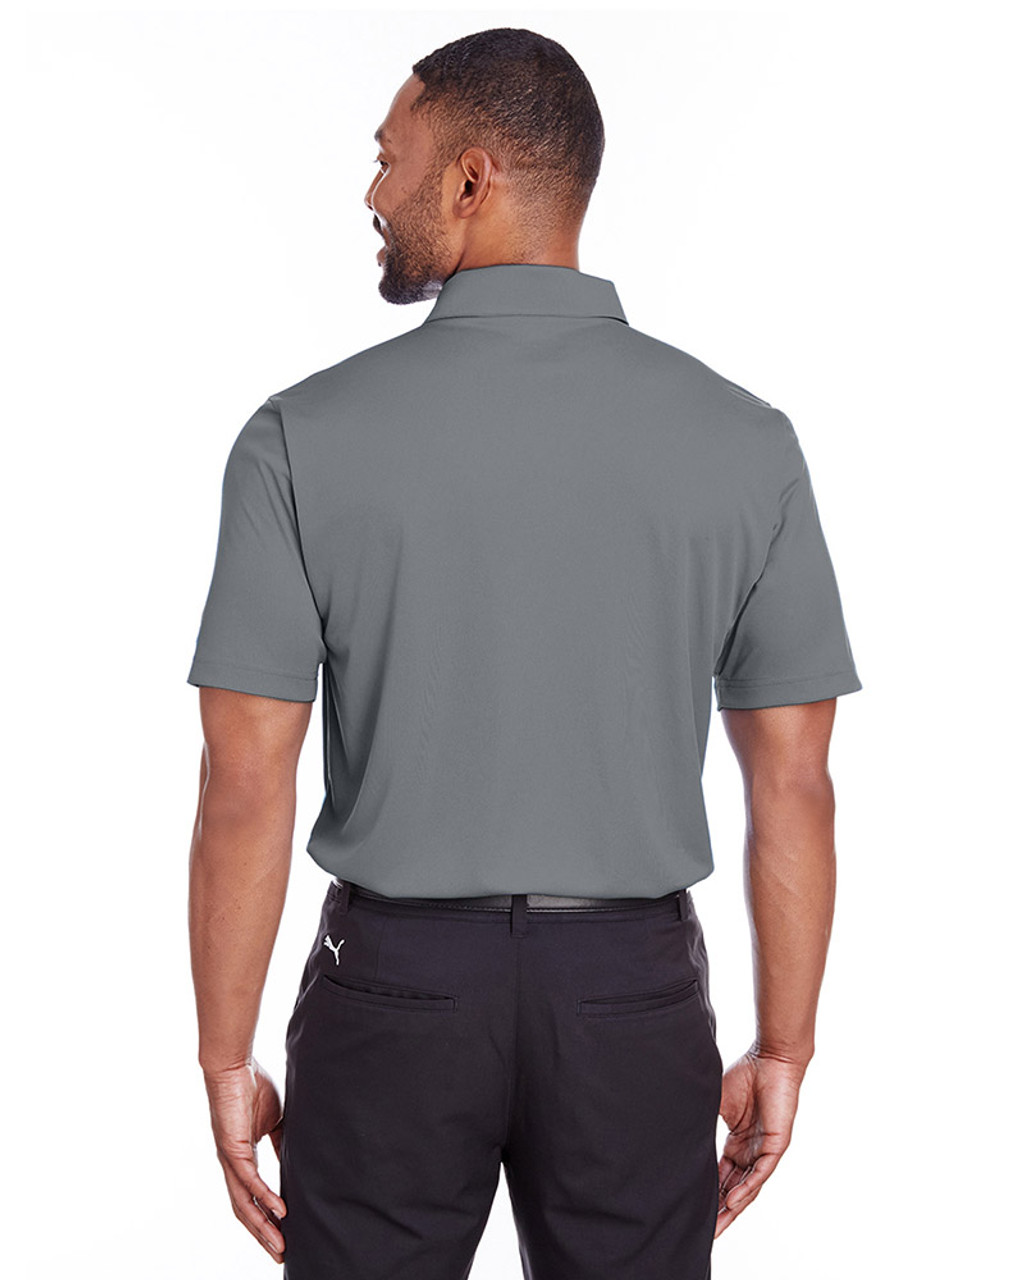 Quiet Shade - back, 596799 Puma Golf Men's Icon Golf Polo | Blankclothing.ca